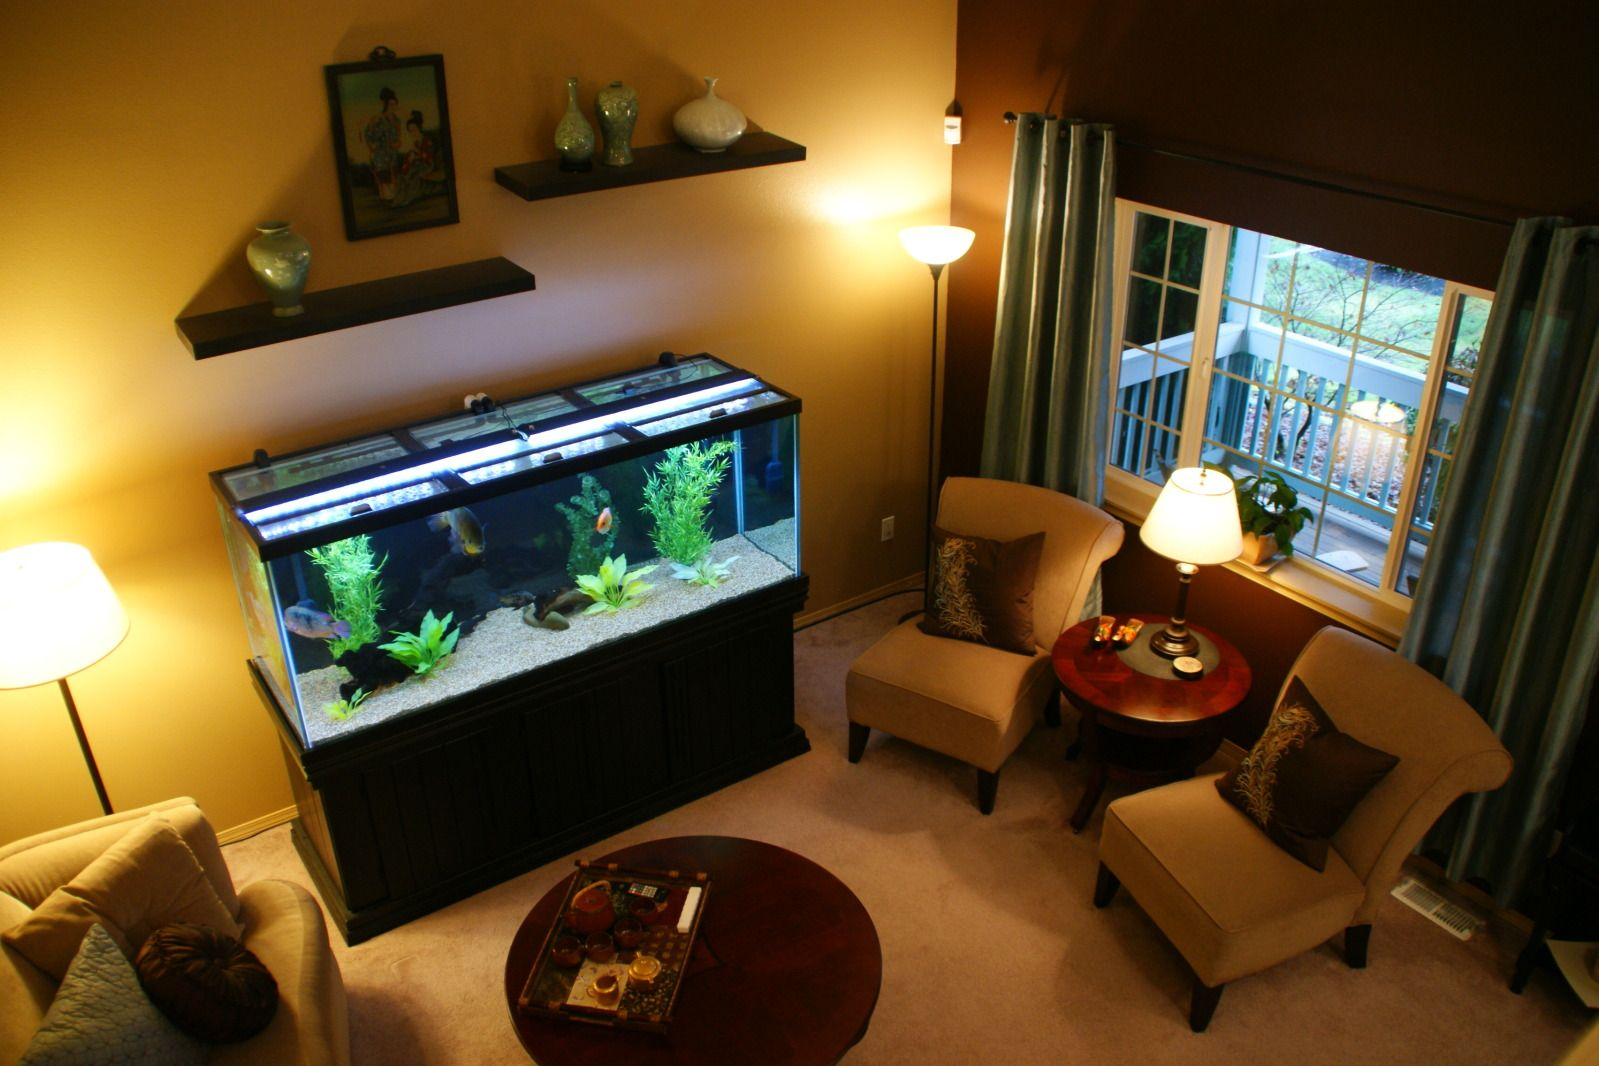 transform the way your home looks using a fish tank | oscar fish